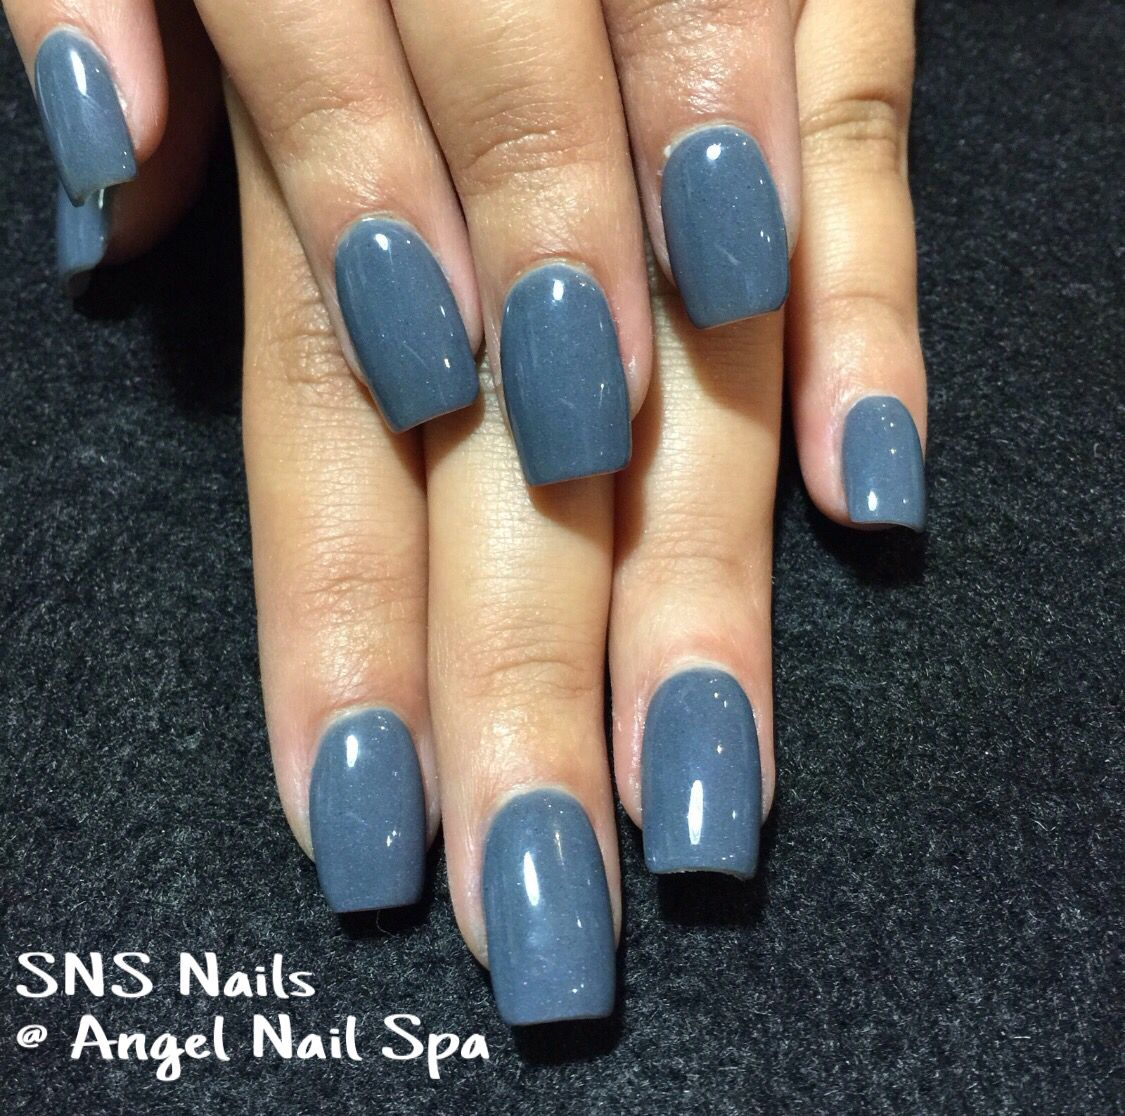 SNS Nails (dipping Powders ) . Not Gel, Not Acrylics, But